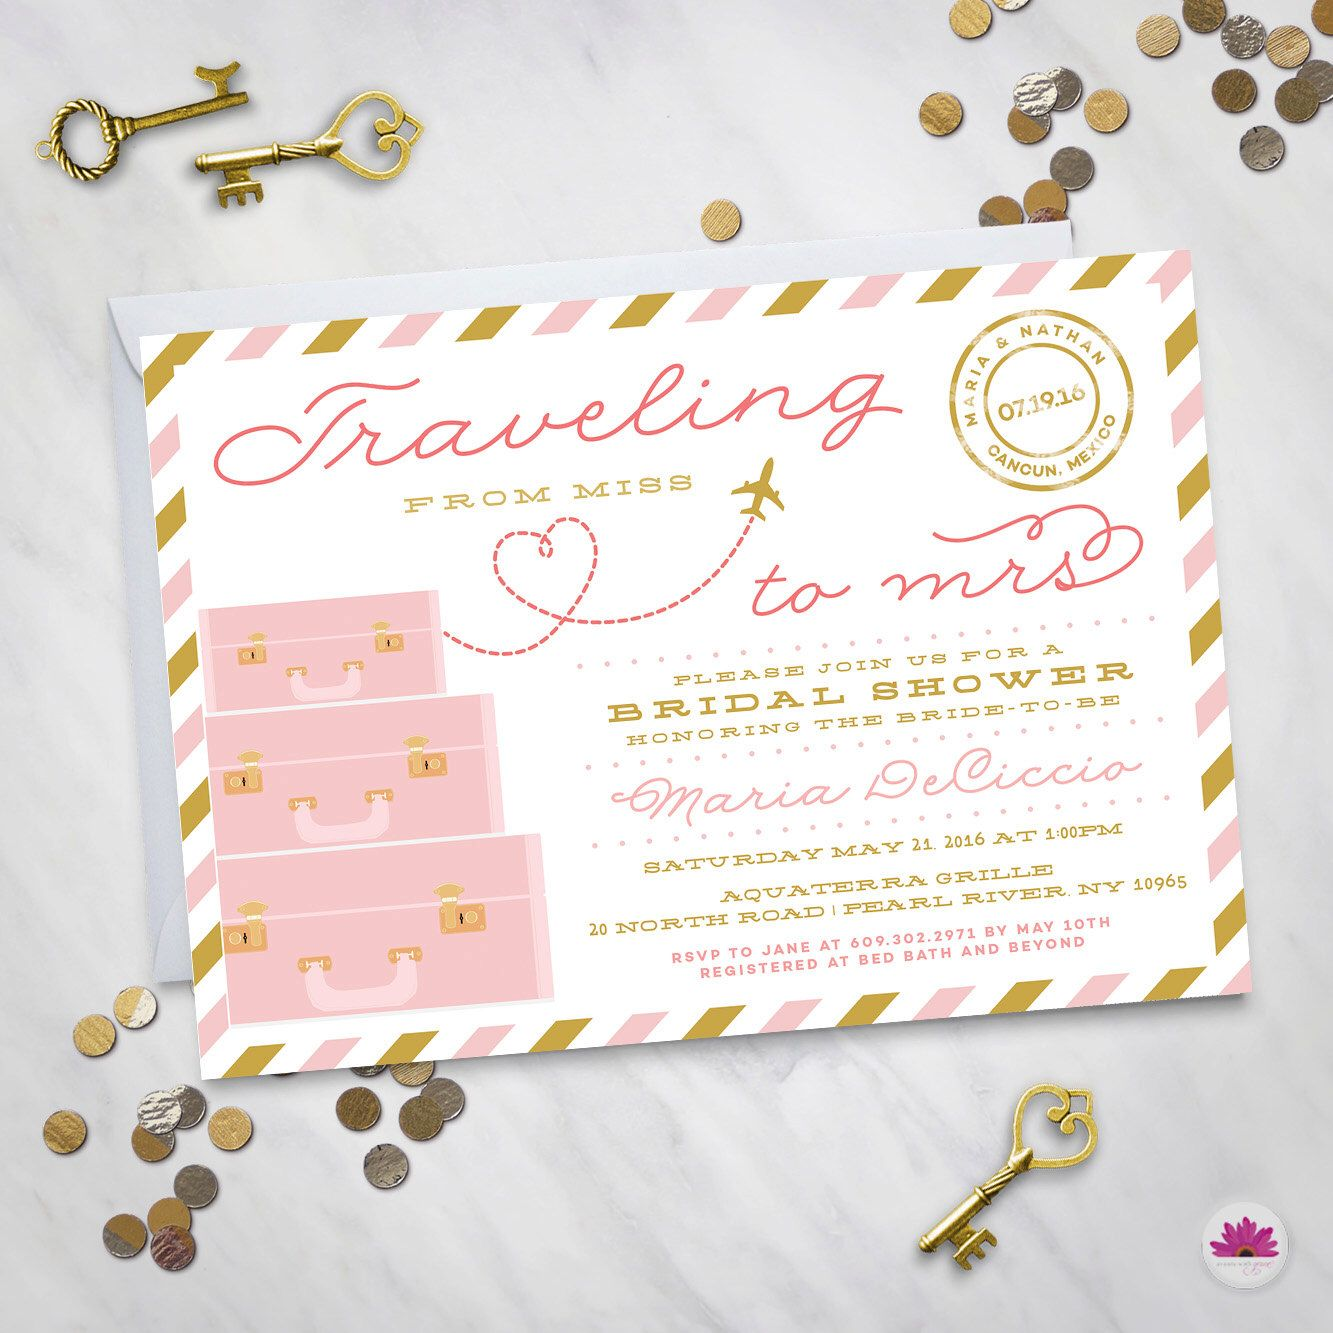 Destination Wedding Quotes For Invitations: Pin By Karyn Vratimos On Sophia's Bridal Shower